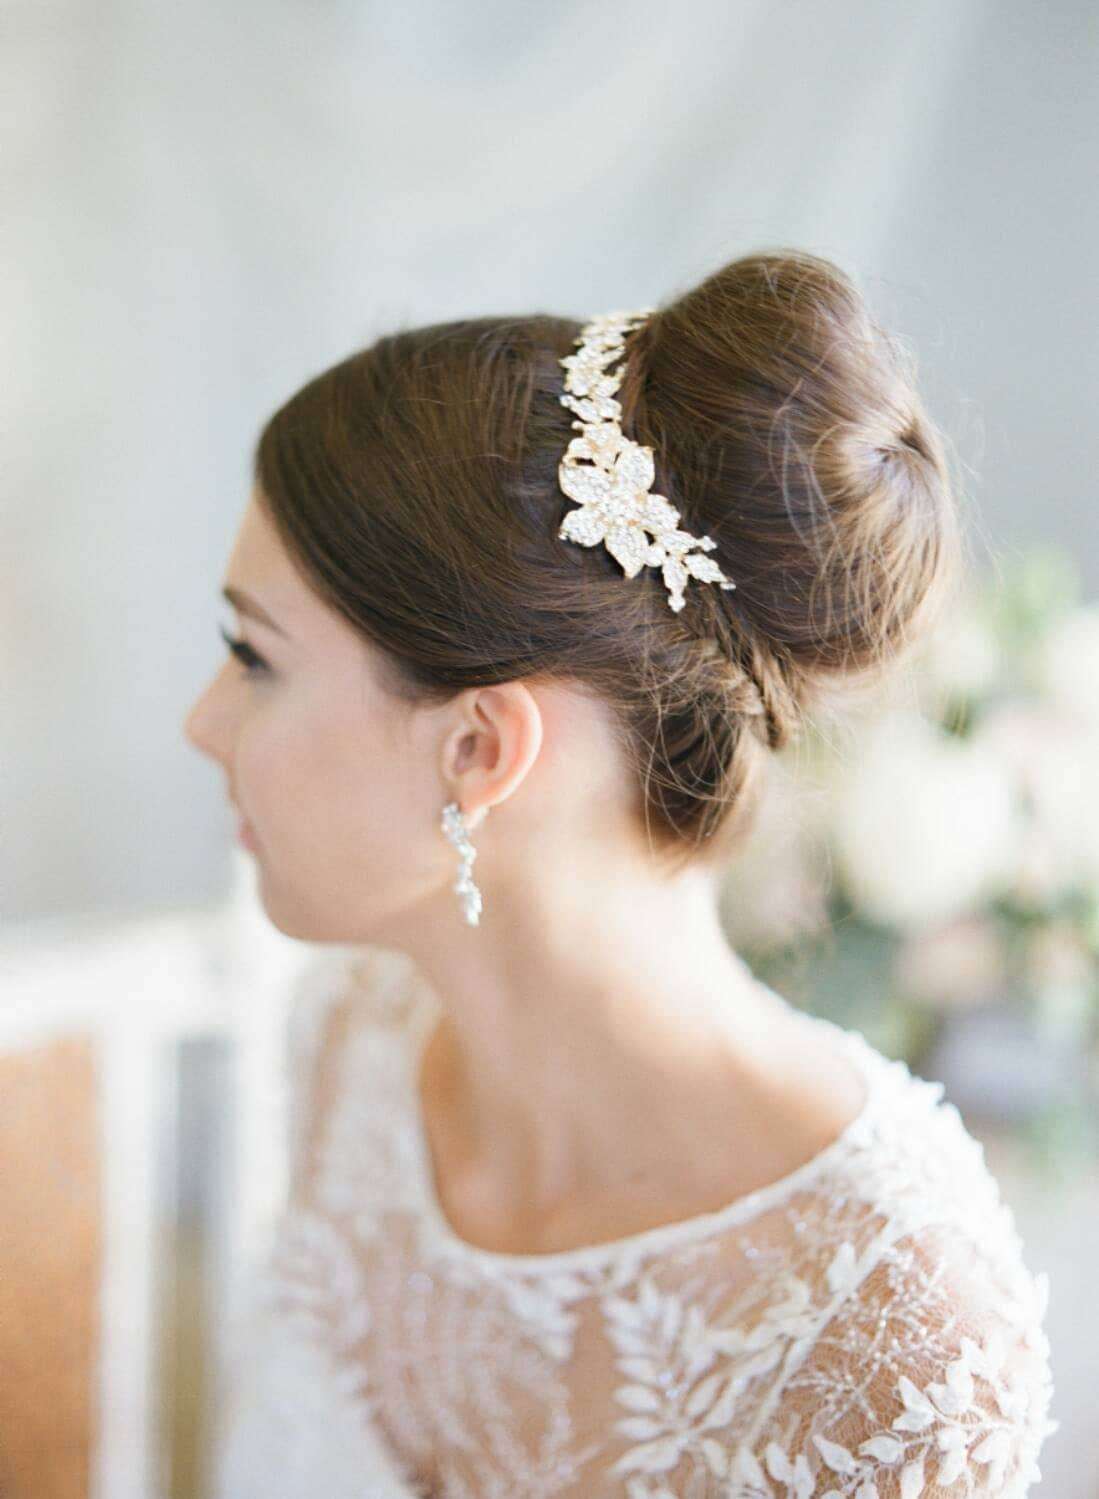 Bridal Hair Accessories For Buns : Swarovski bun wrap bridal hair vine crystal wedding